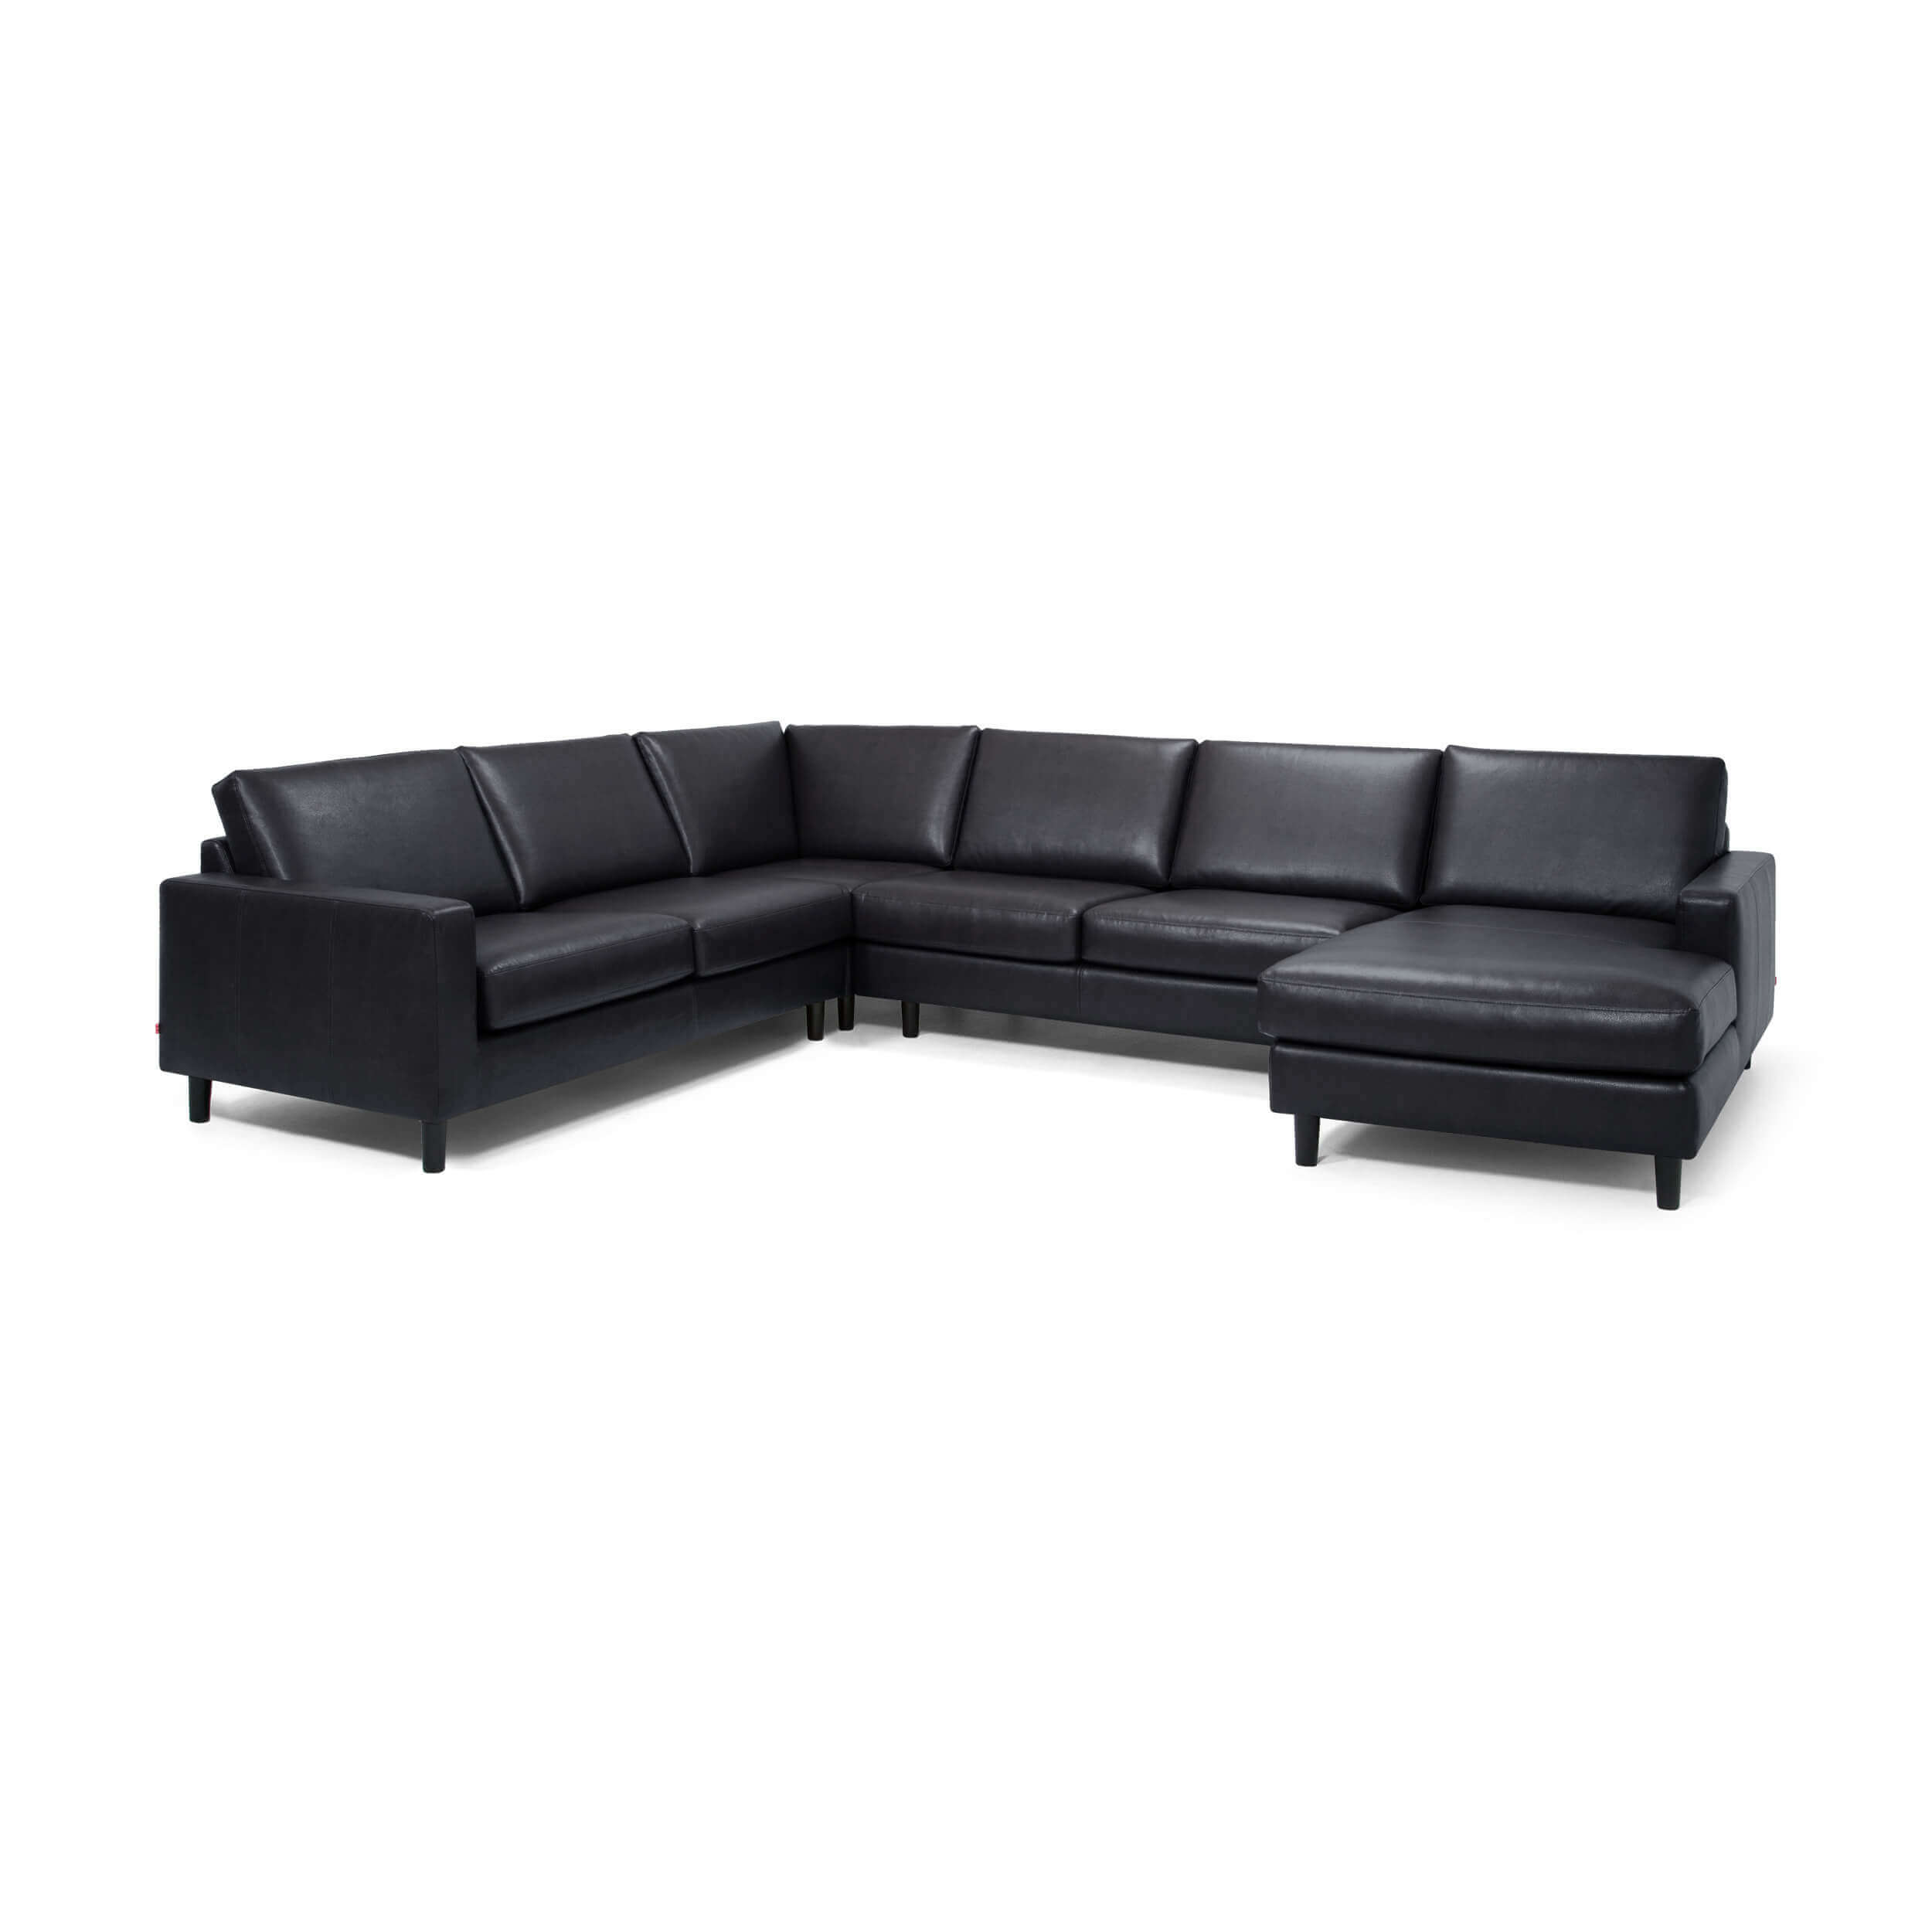 Modern Living Room Furniture | Seating | Modern Sectional Sofas ...